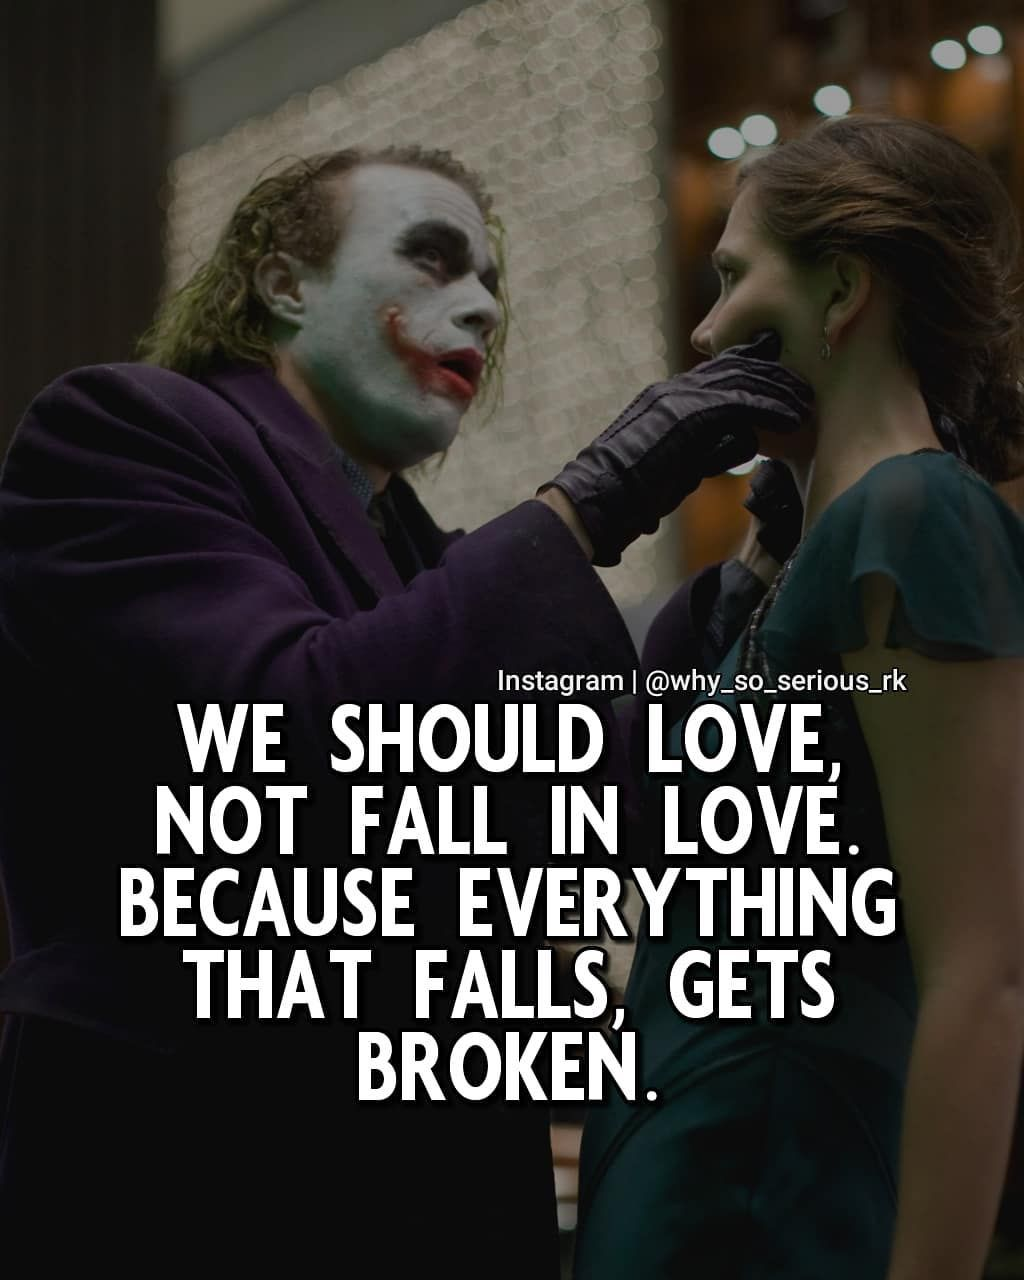 Comment Yes If You Agree Follow Why So Serious Rk For